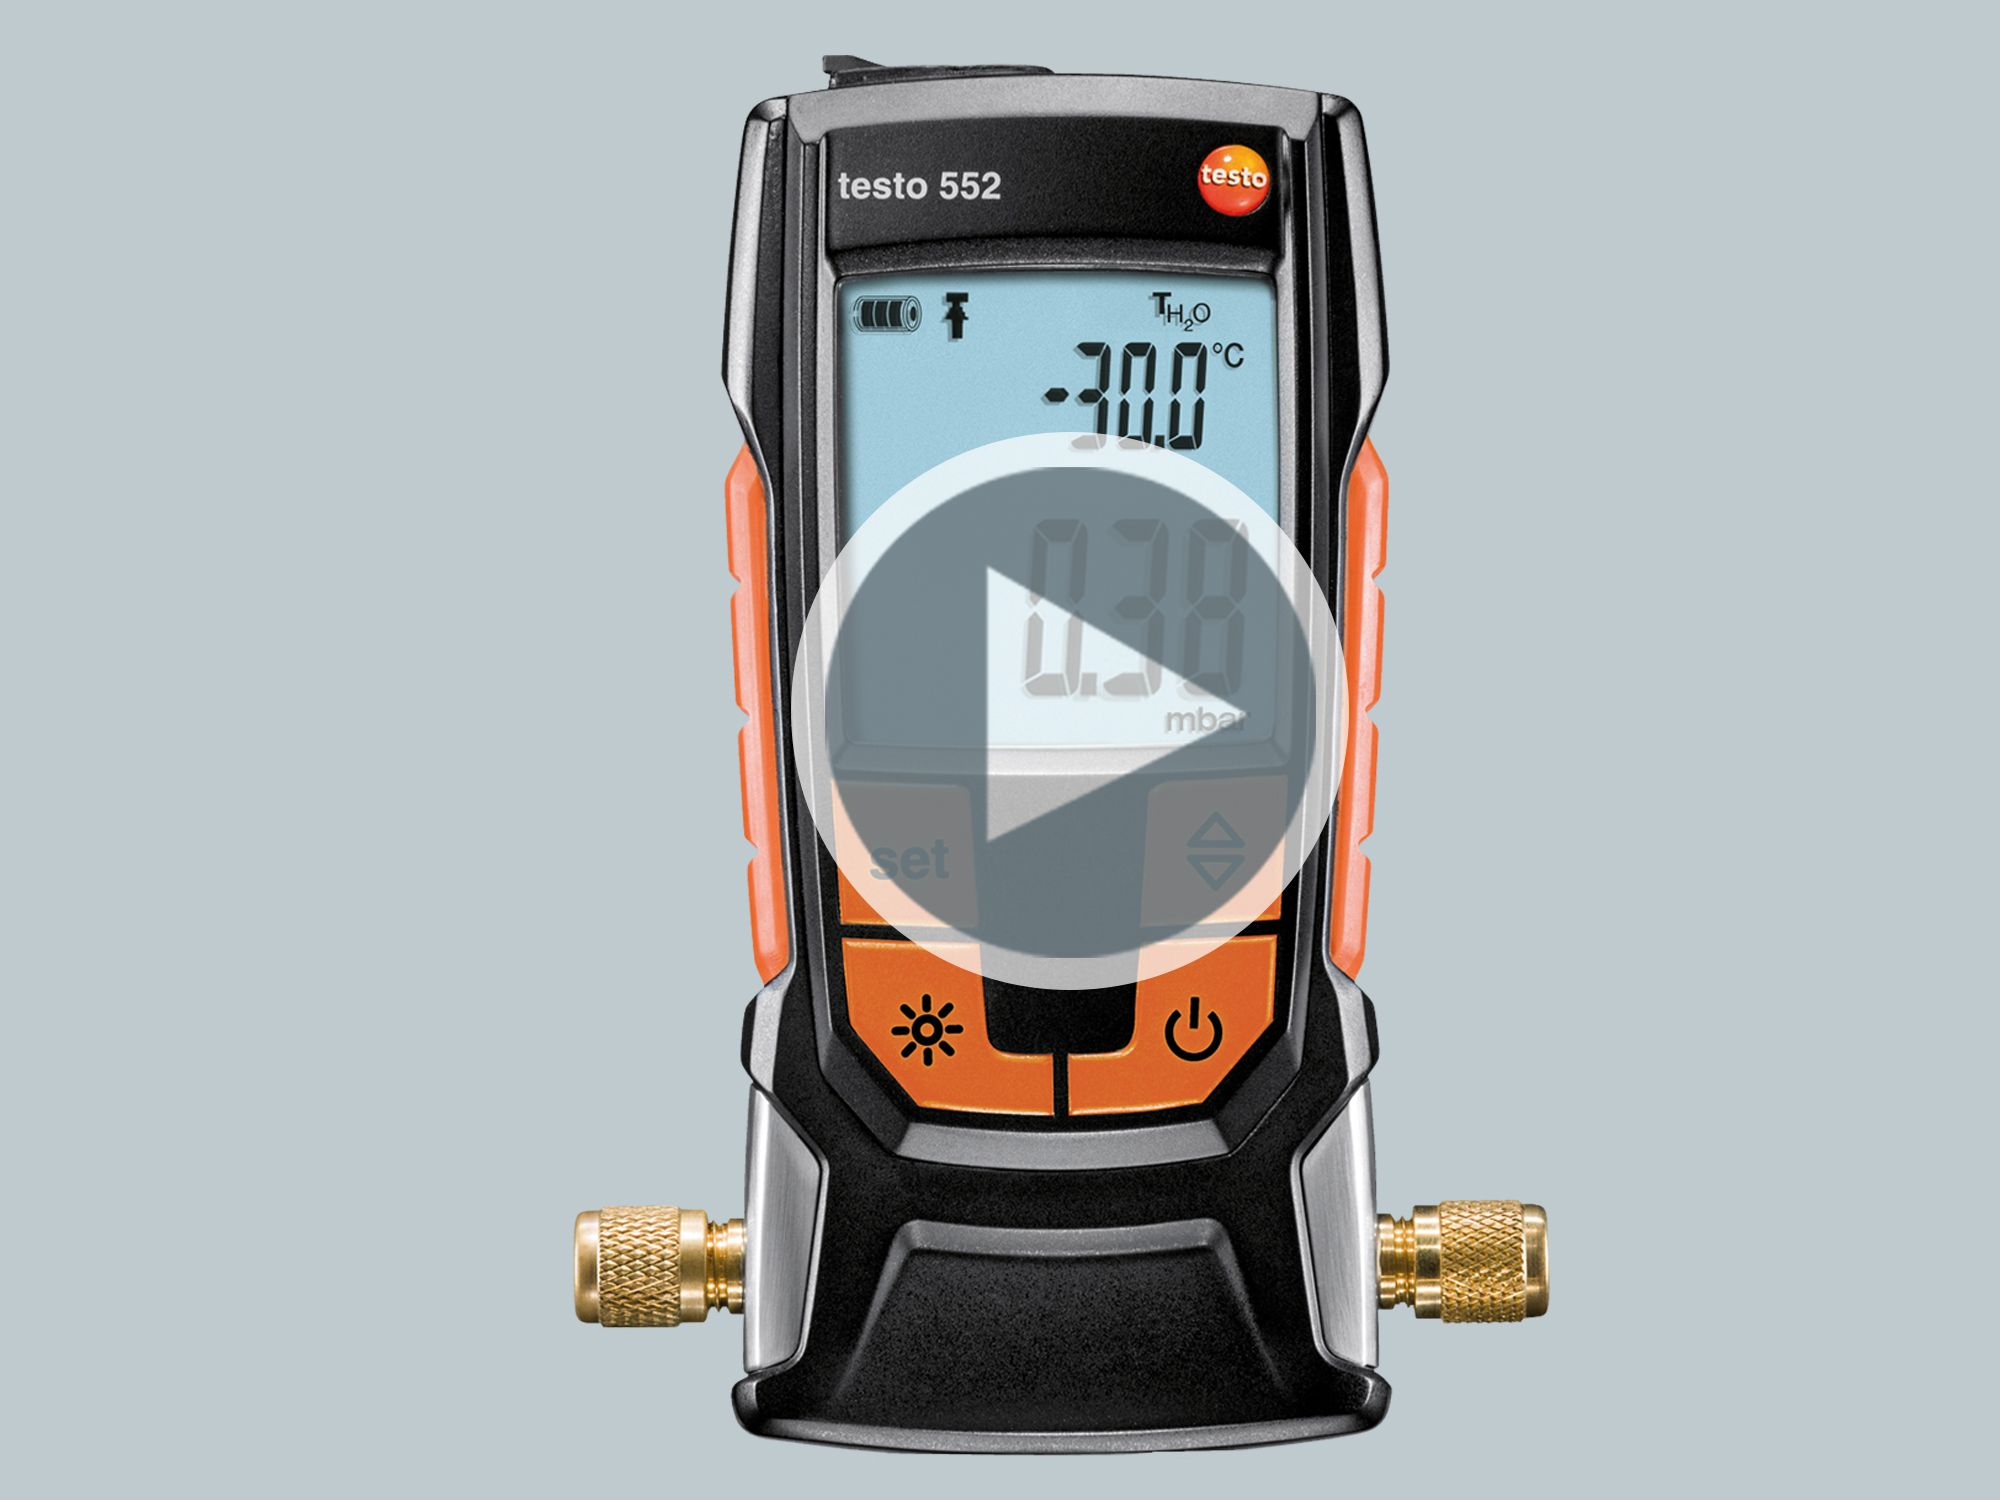 ApplicationVideos: testo 552